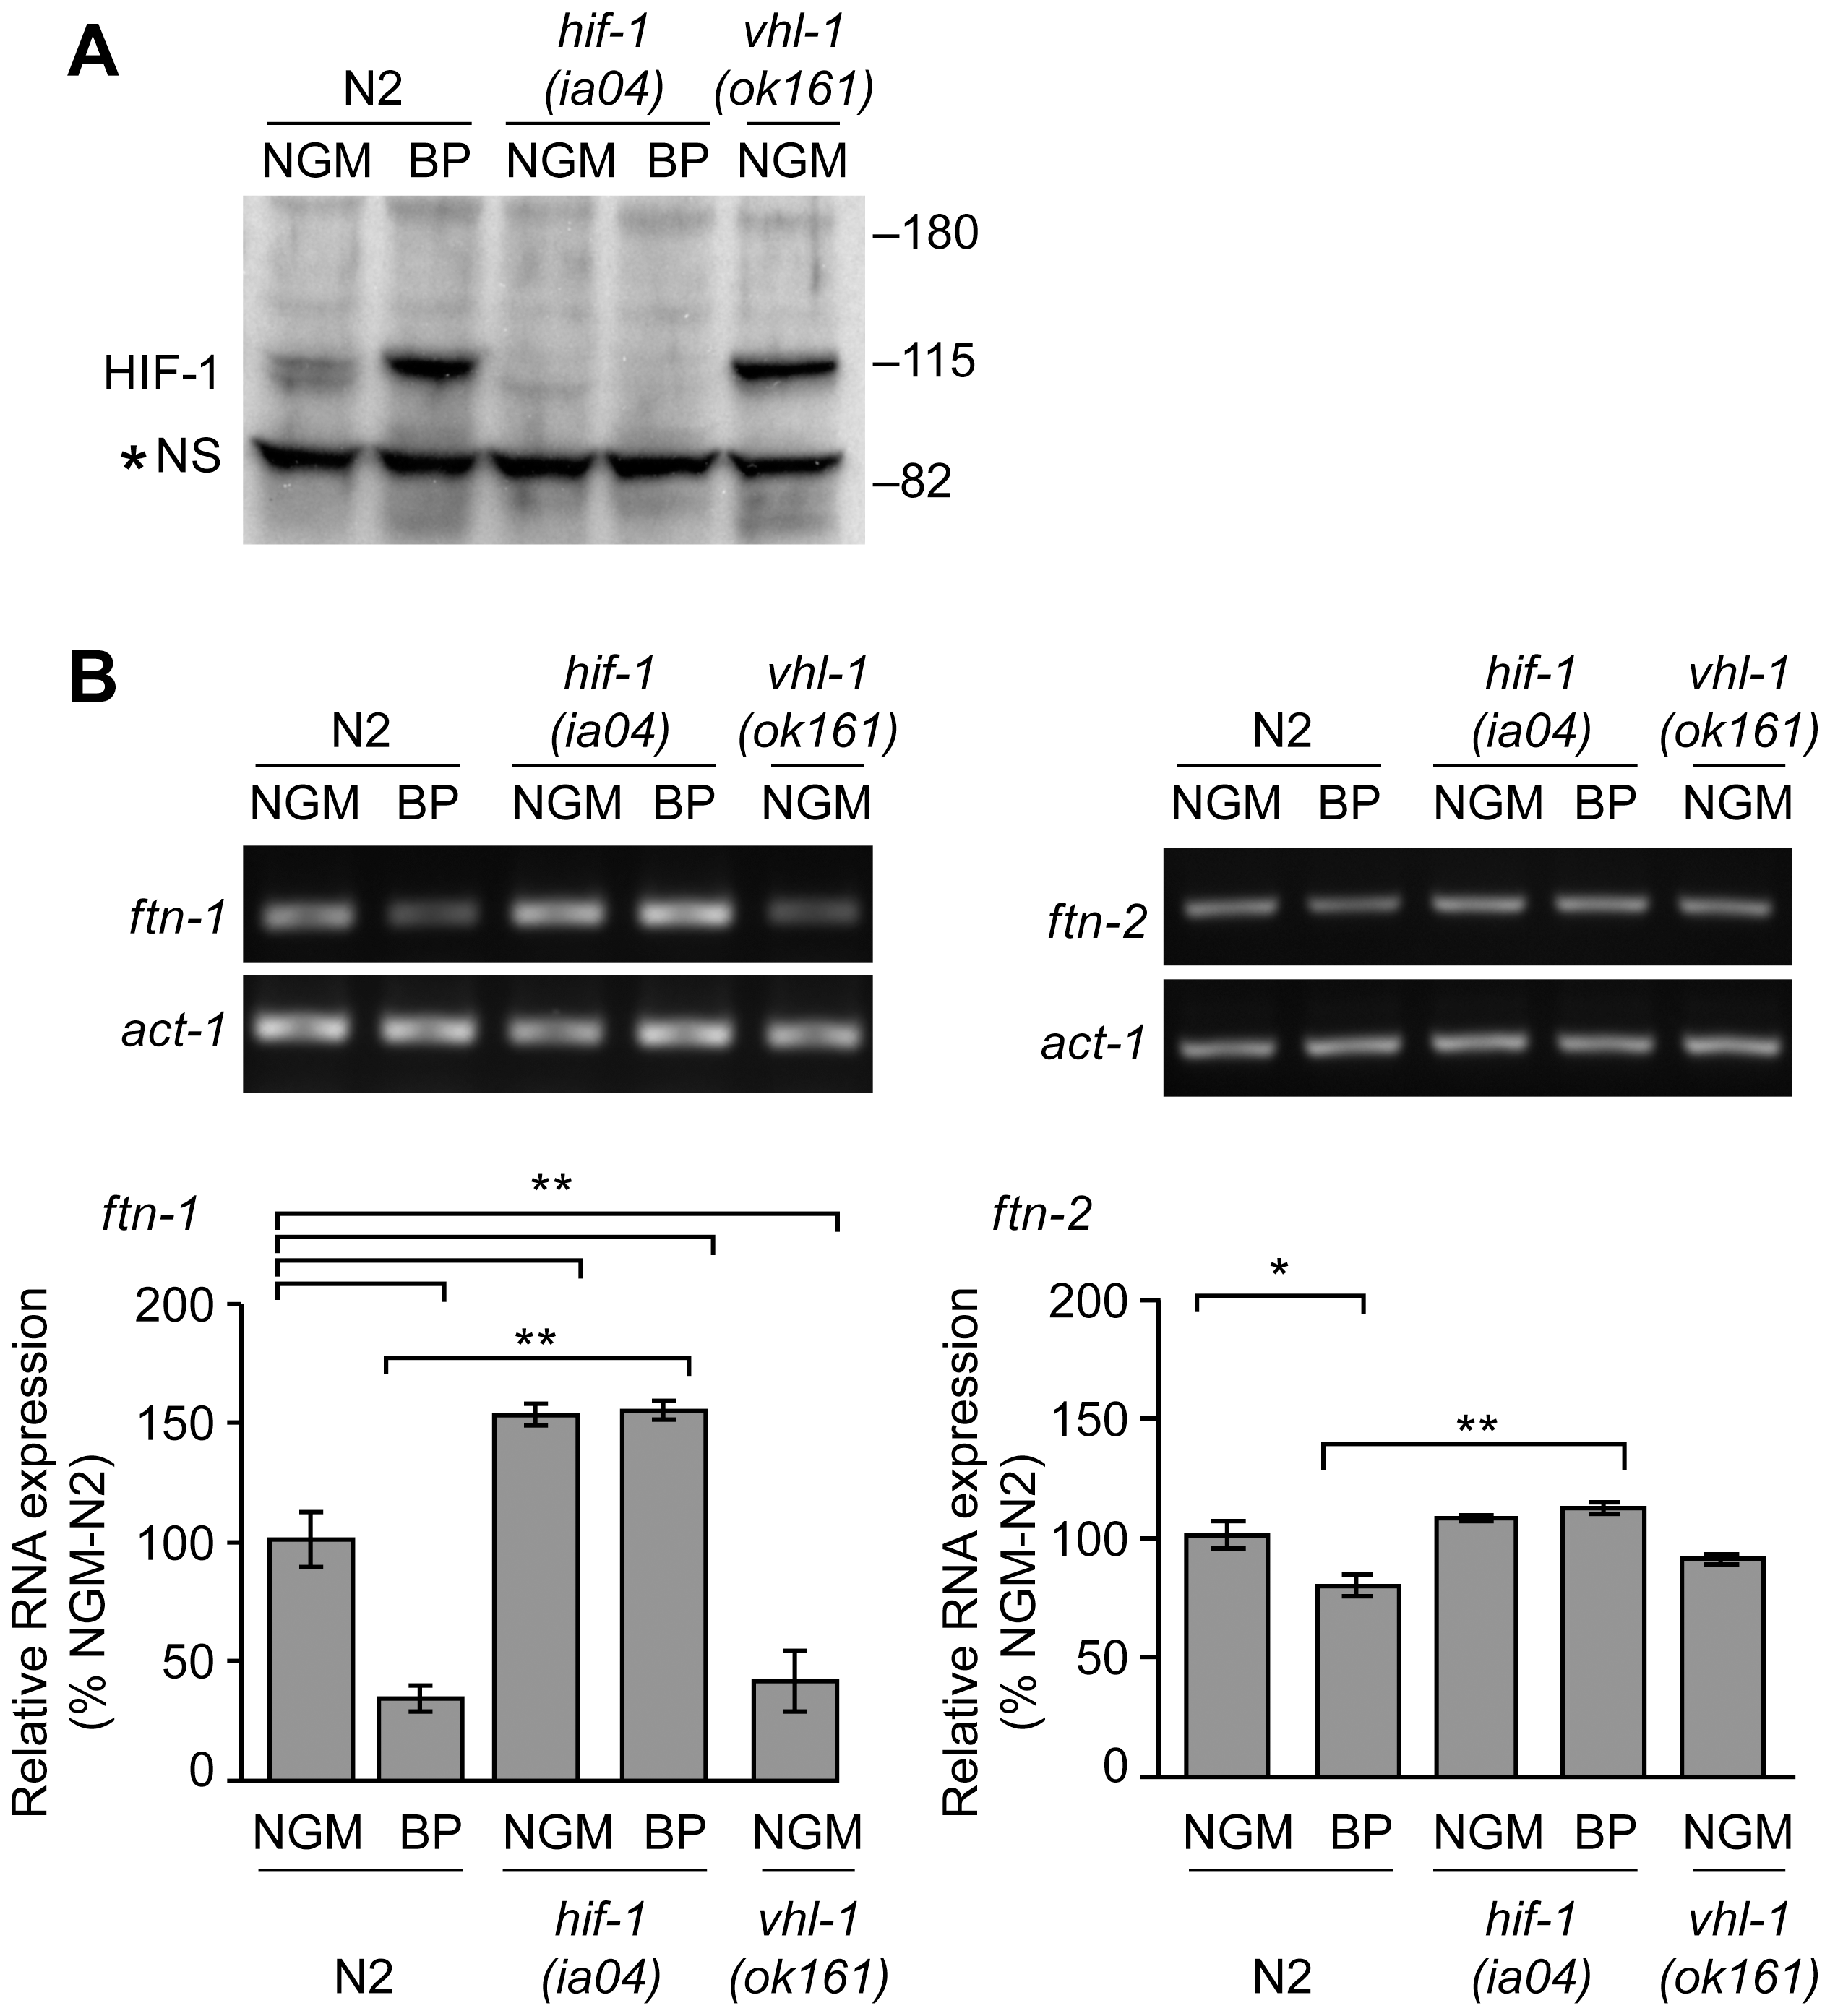 Endogenous <i>ftn-1</i> and <i>ftn-2</i> mRNA expression is regulated by HIF-1.